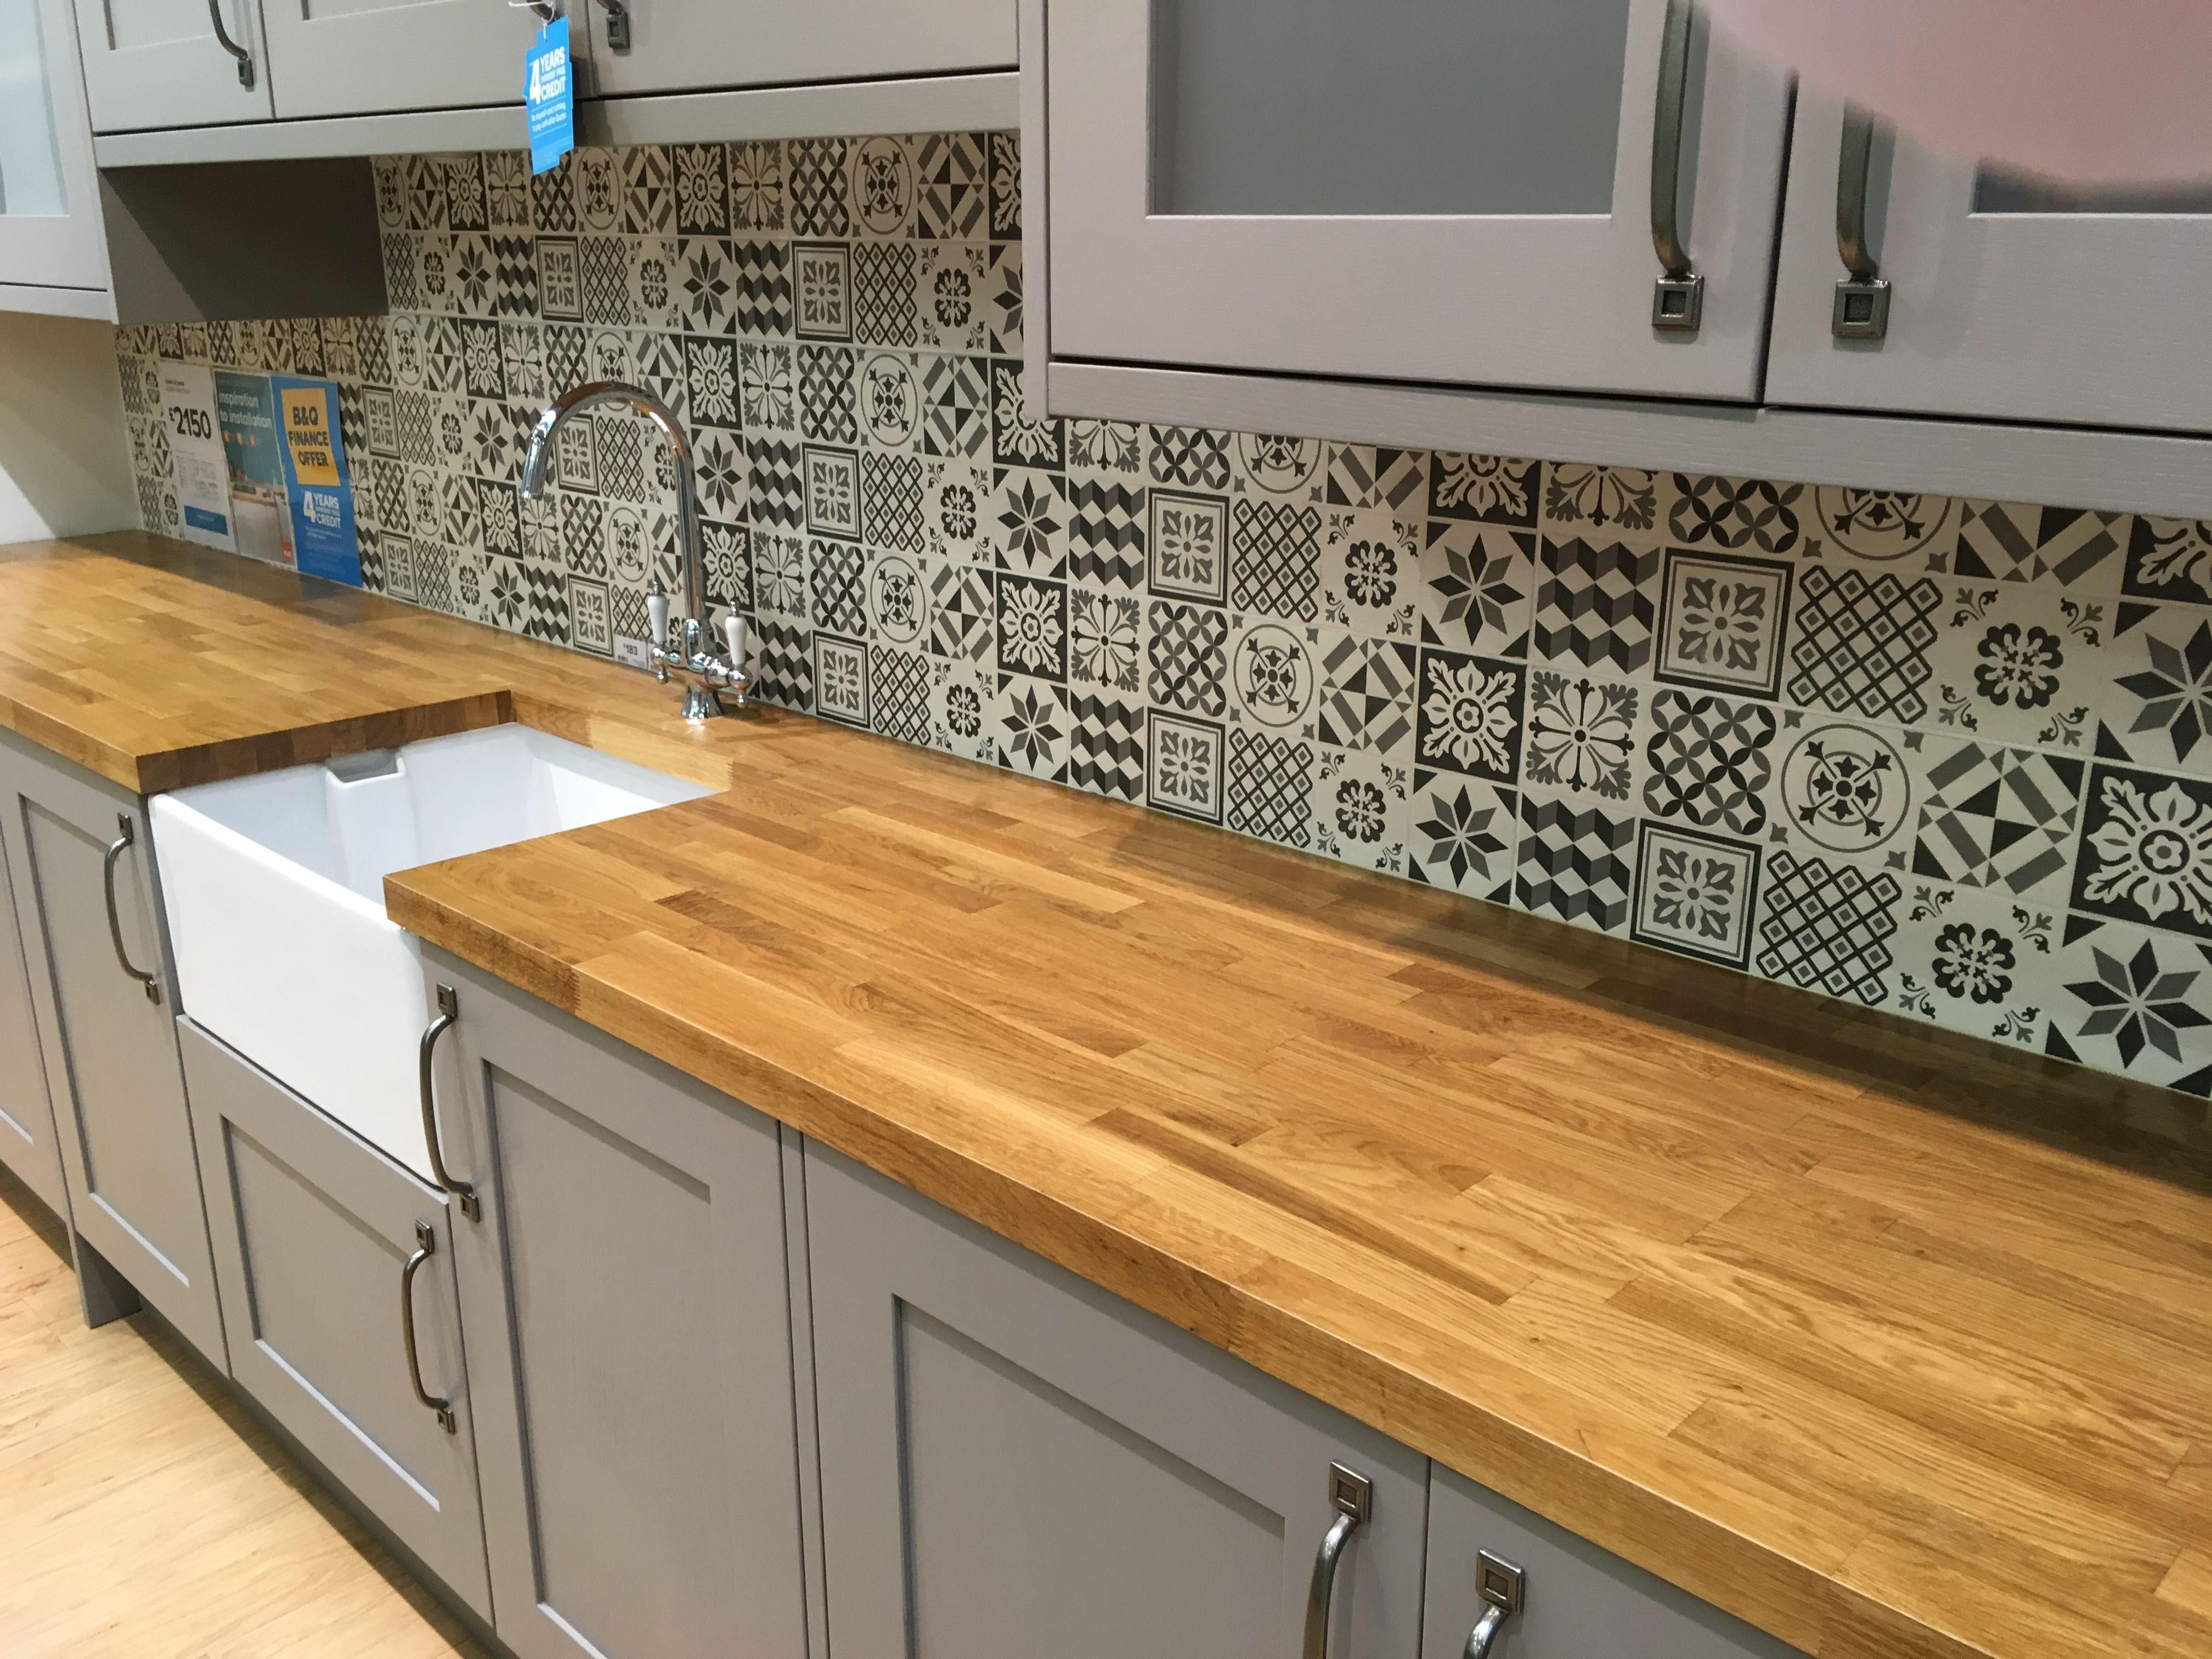 B&q Kitchen Design Jobs Carisbrooke Taupe Tiles B Q My True Homie In 2019 Morrocan